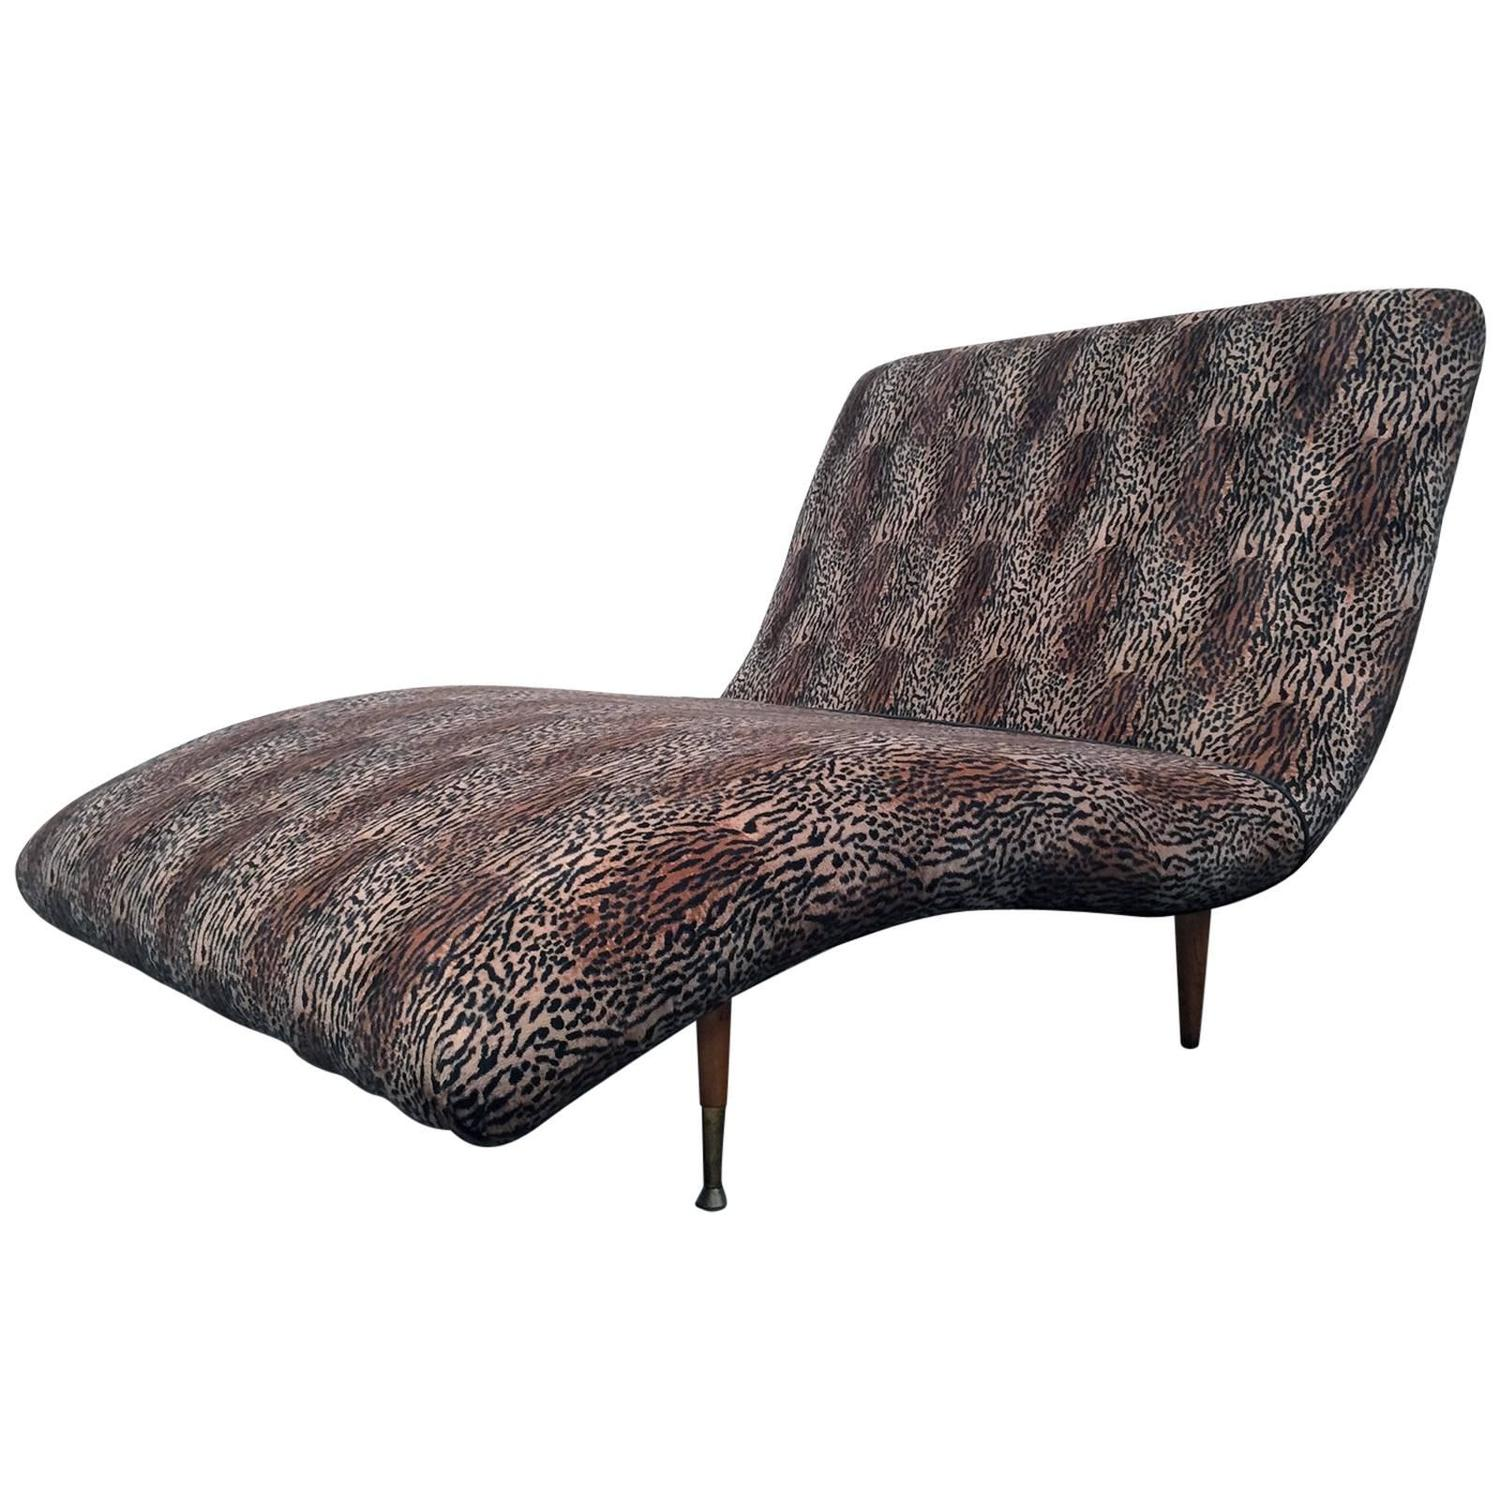 Modern Wave Chaise Longue For Sale At 1stdibs